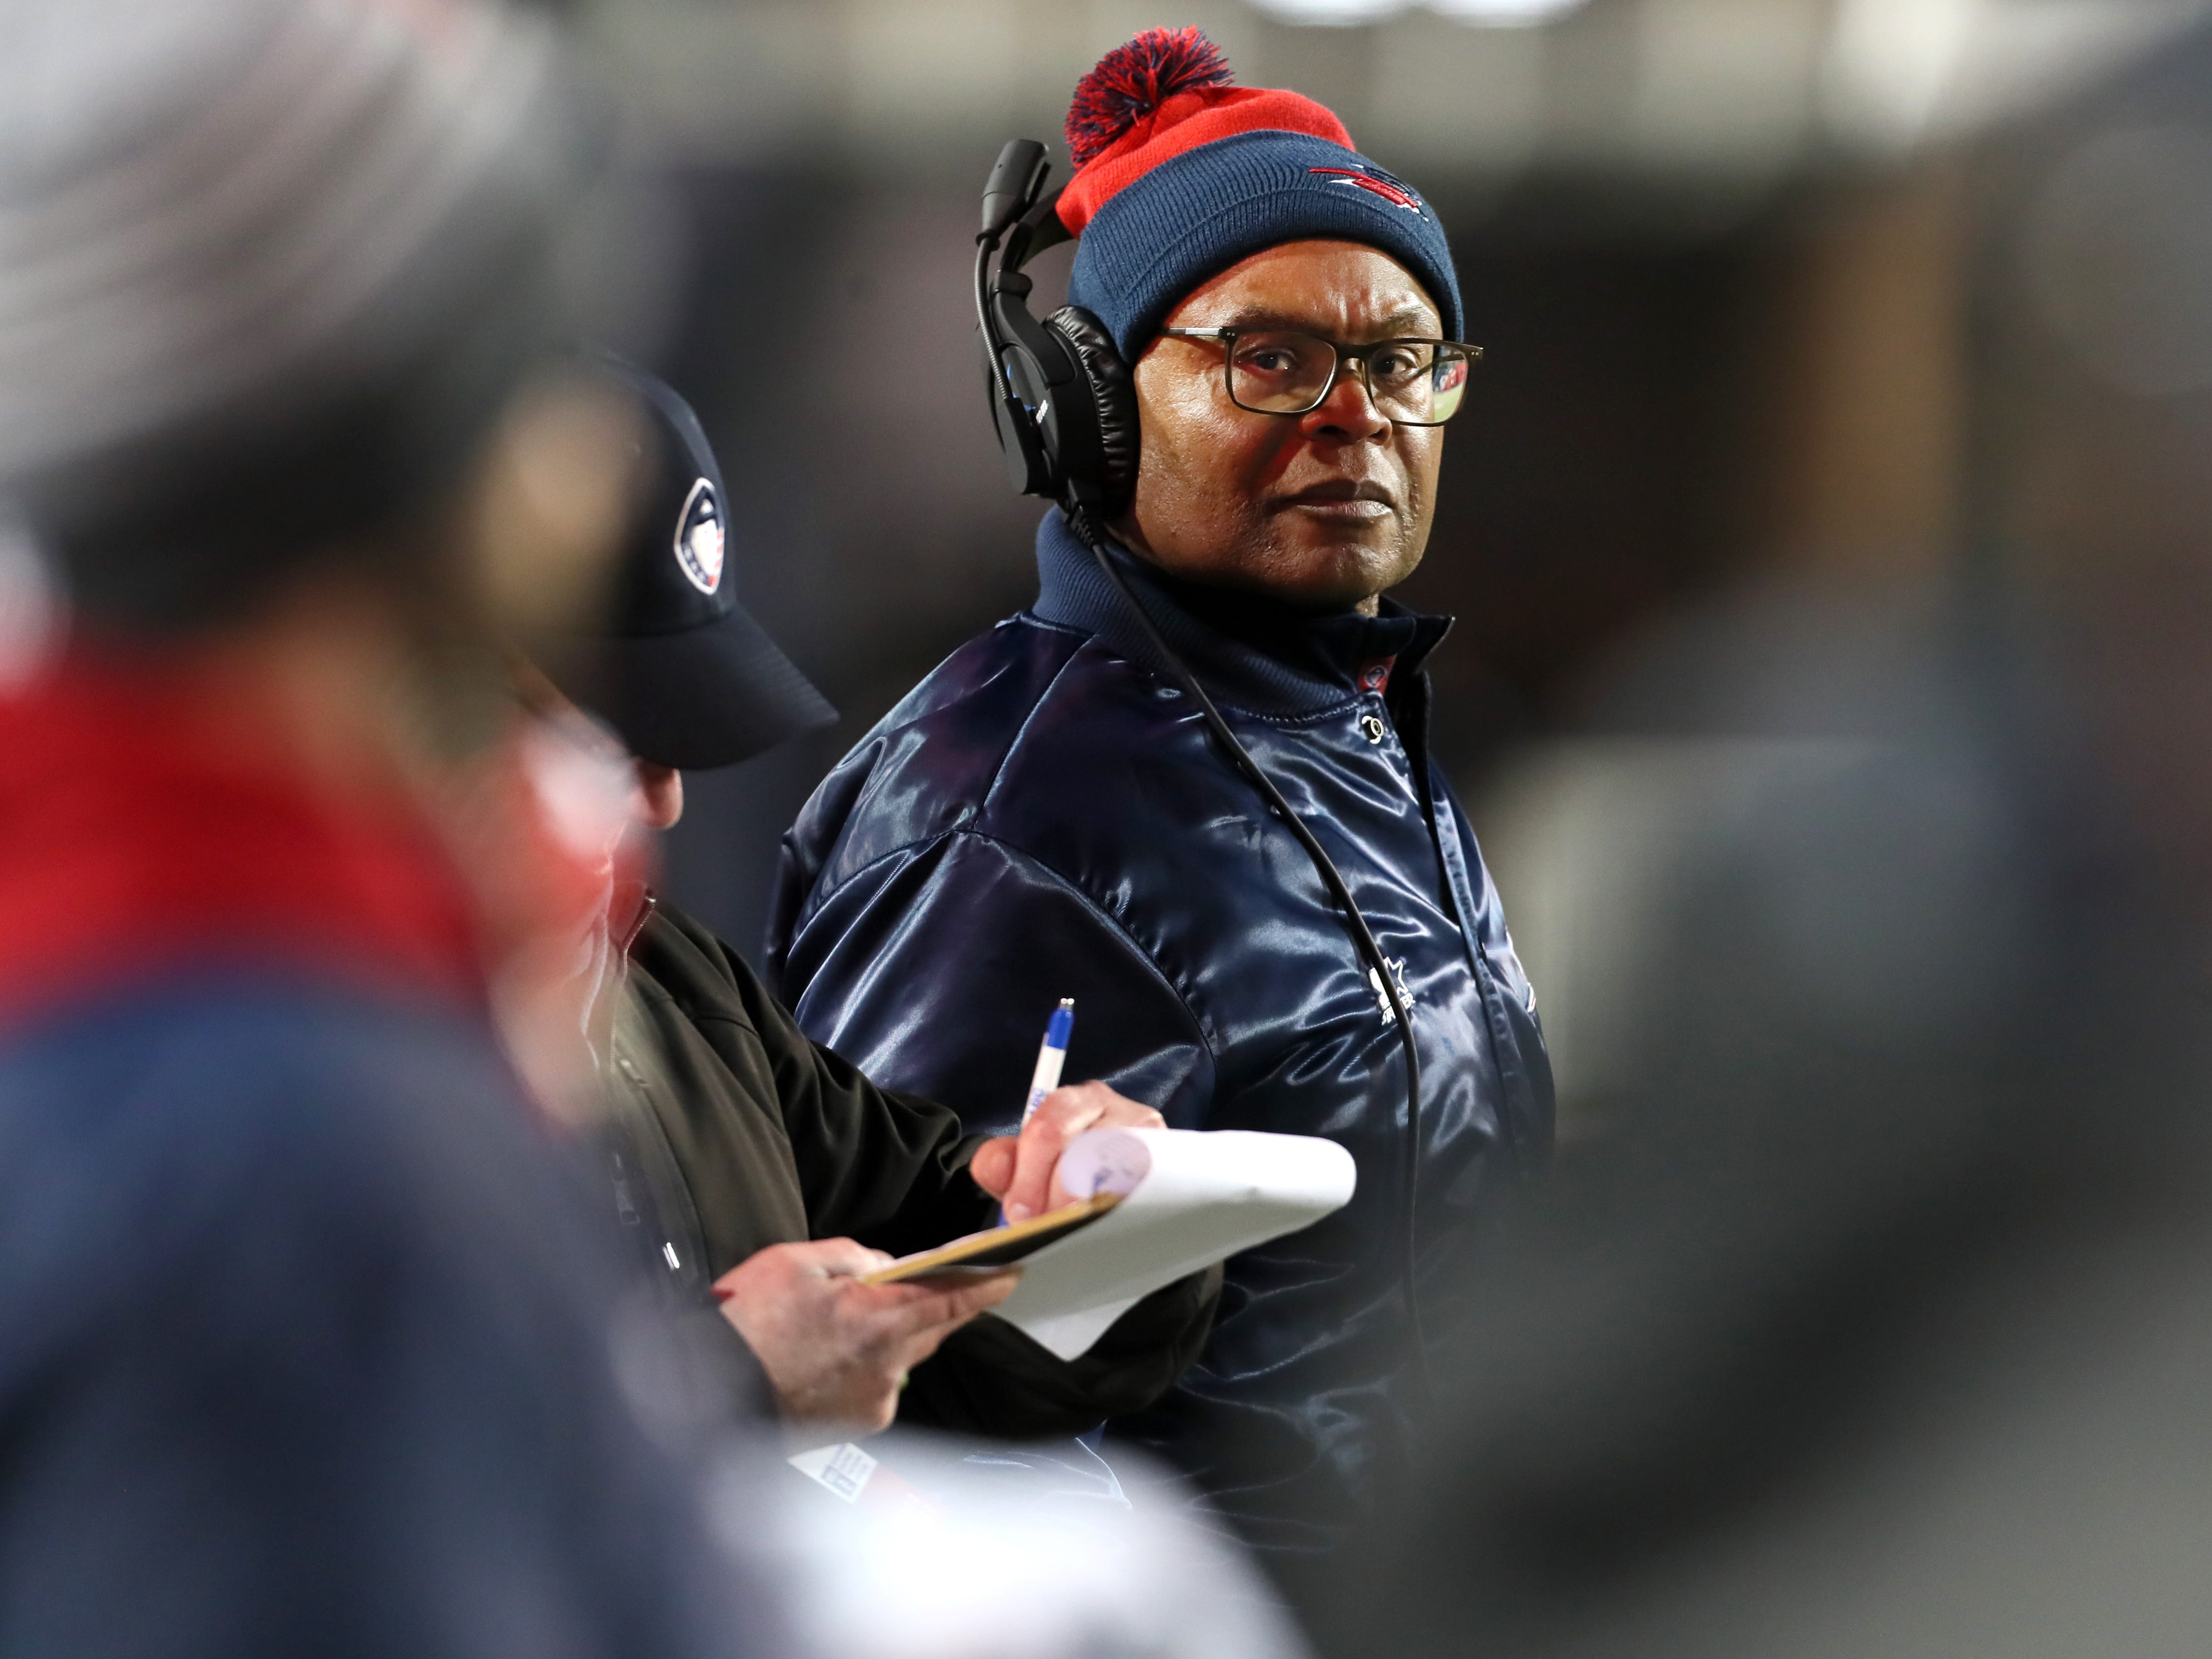 Memphis Express Head Coach Mike SIngletary watches from the sidelines as his team takes on the Arizona Hotshots at the Liberty Bowl on Saturday, Feb. 16, 2019.